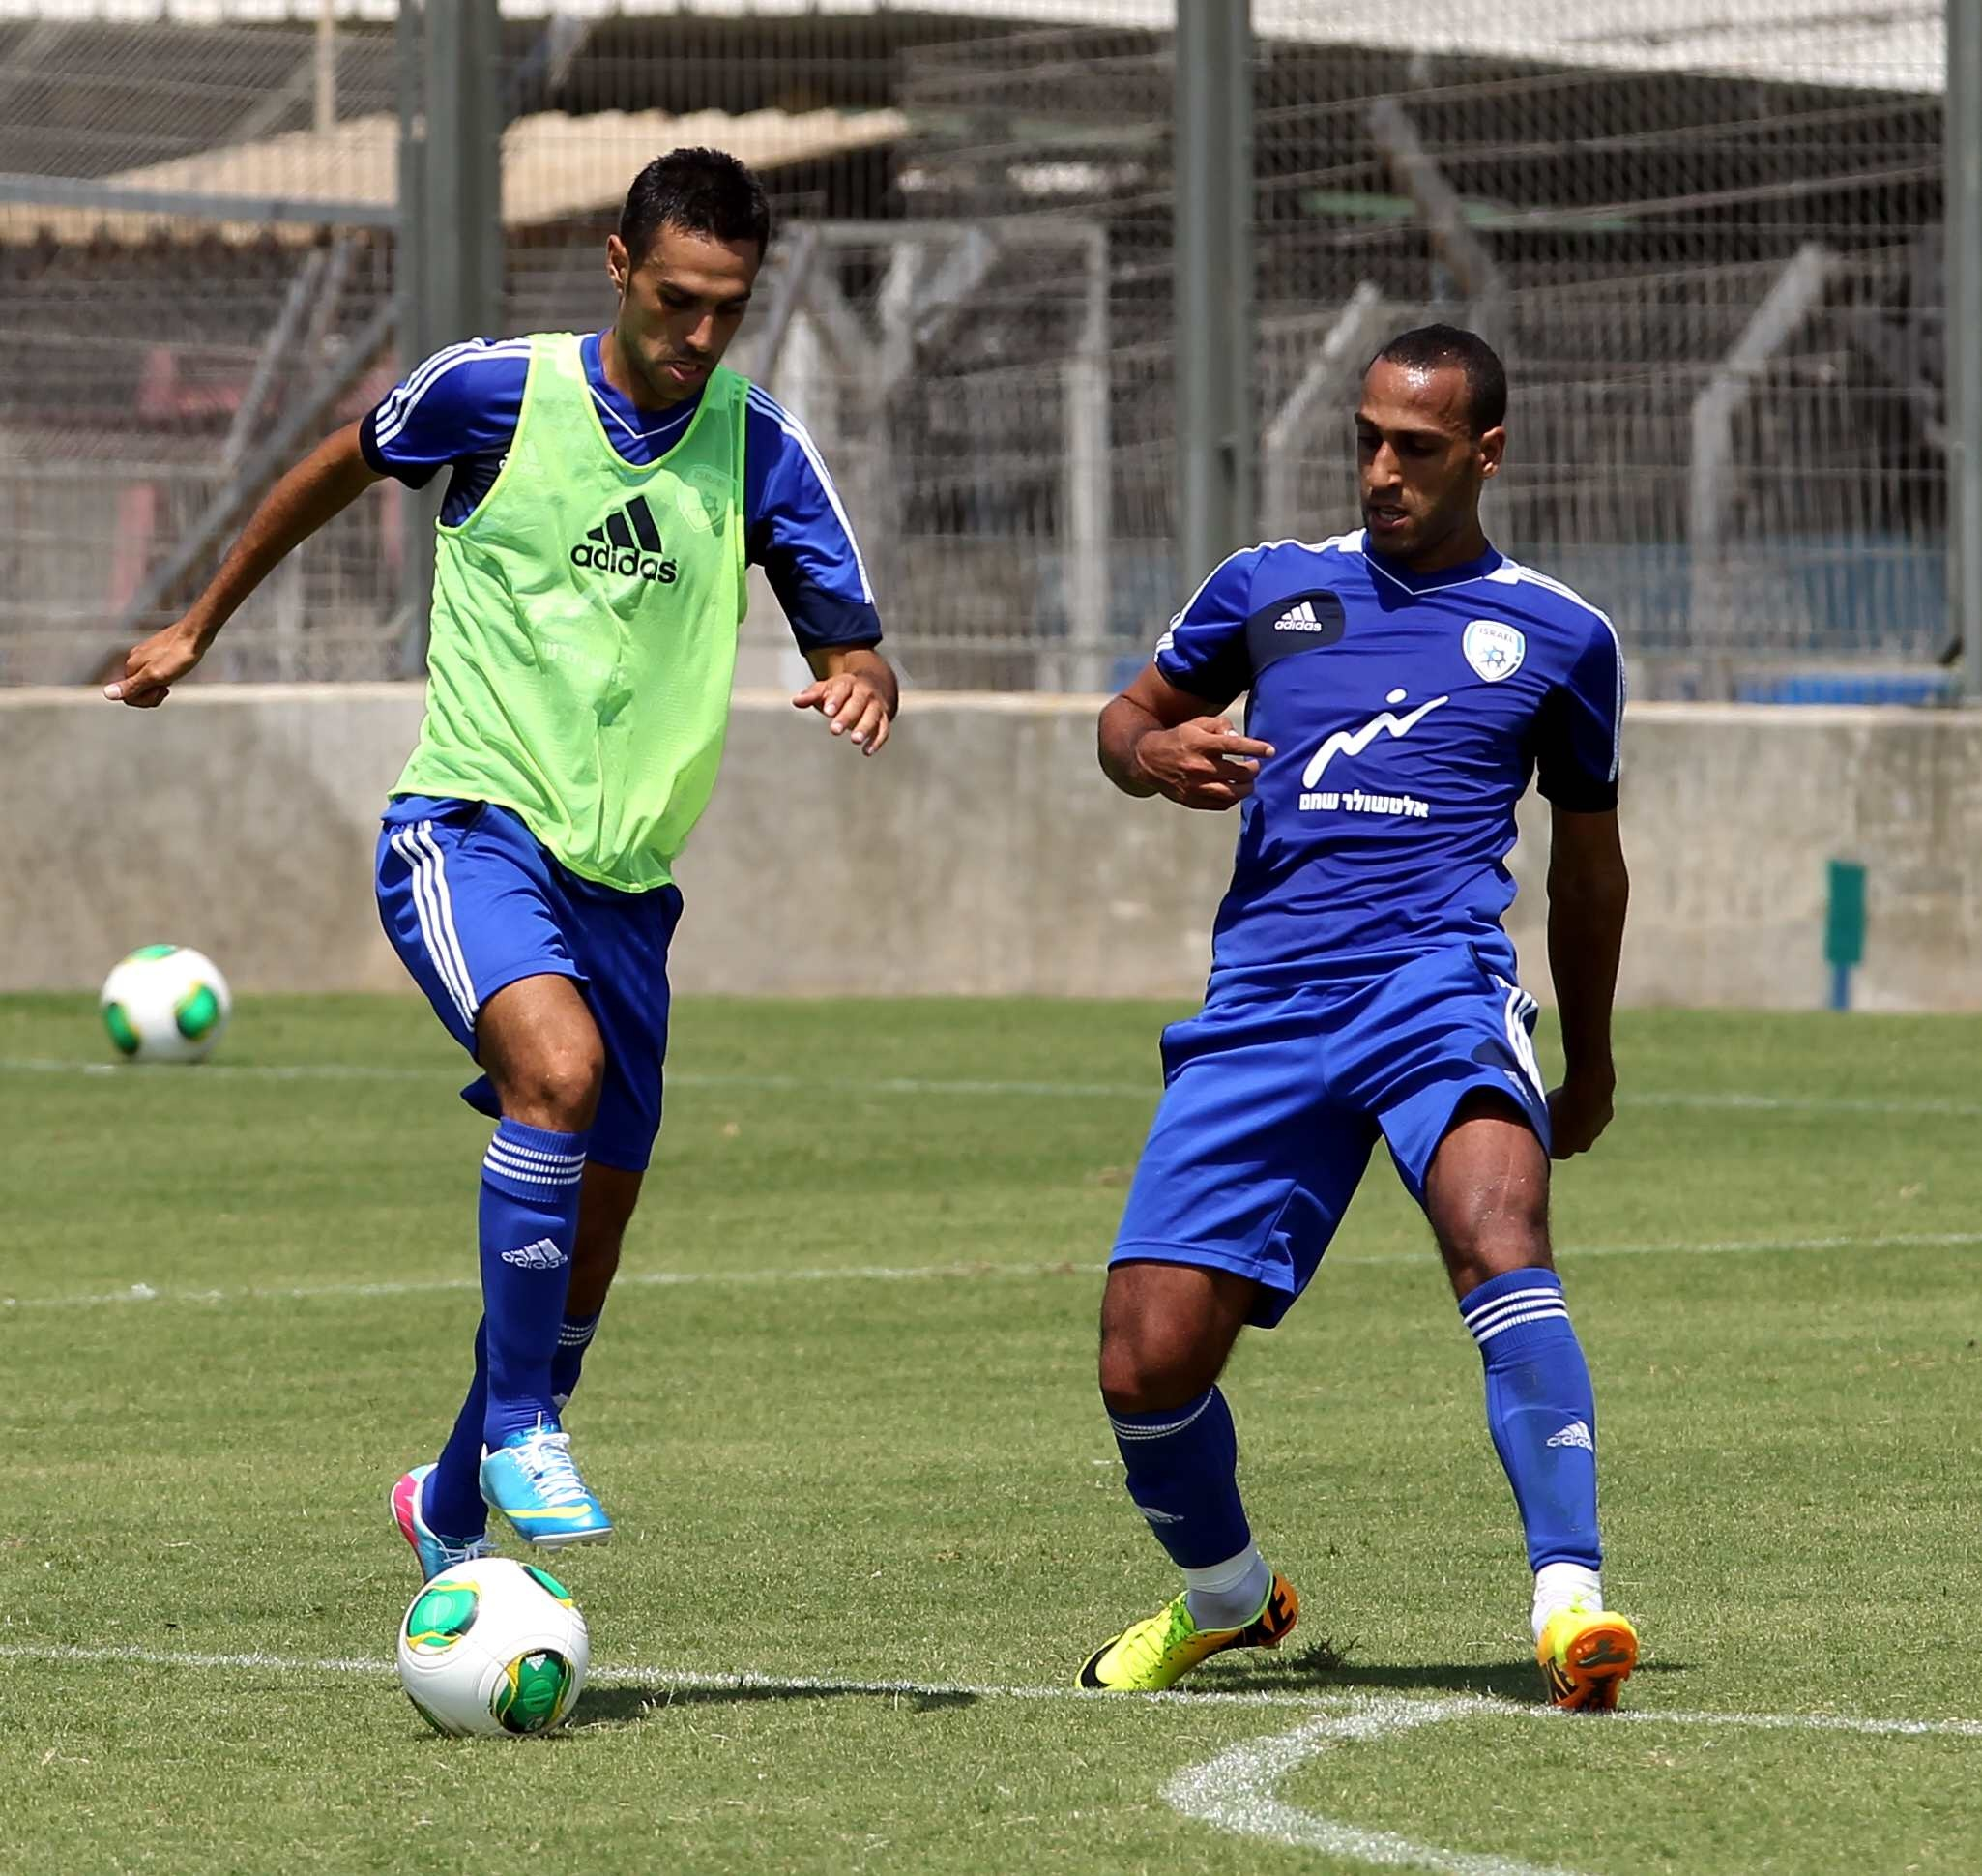 Eran Zehavi & Mahran Radi-Israel Football Association Website